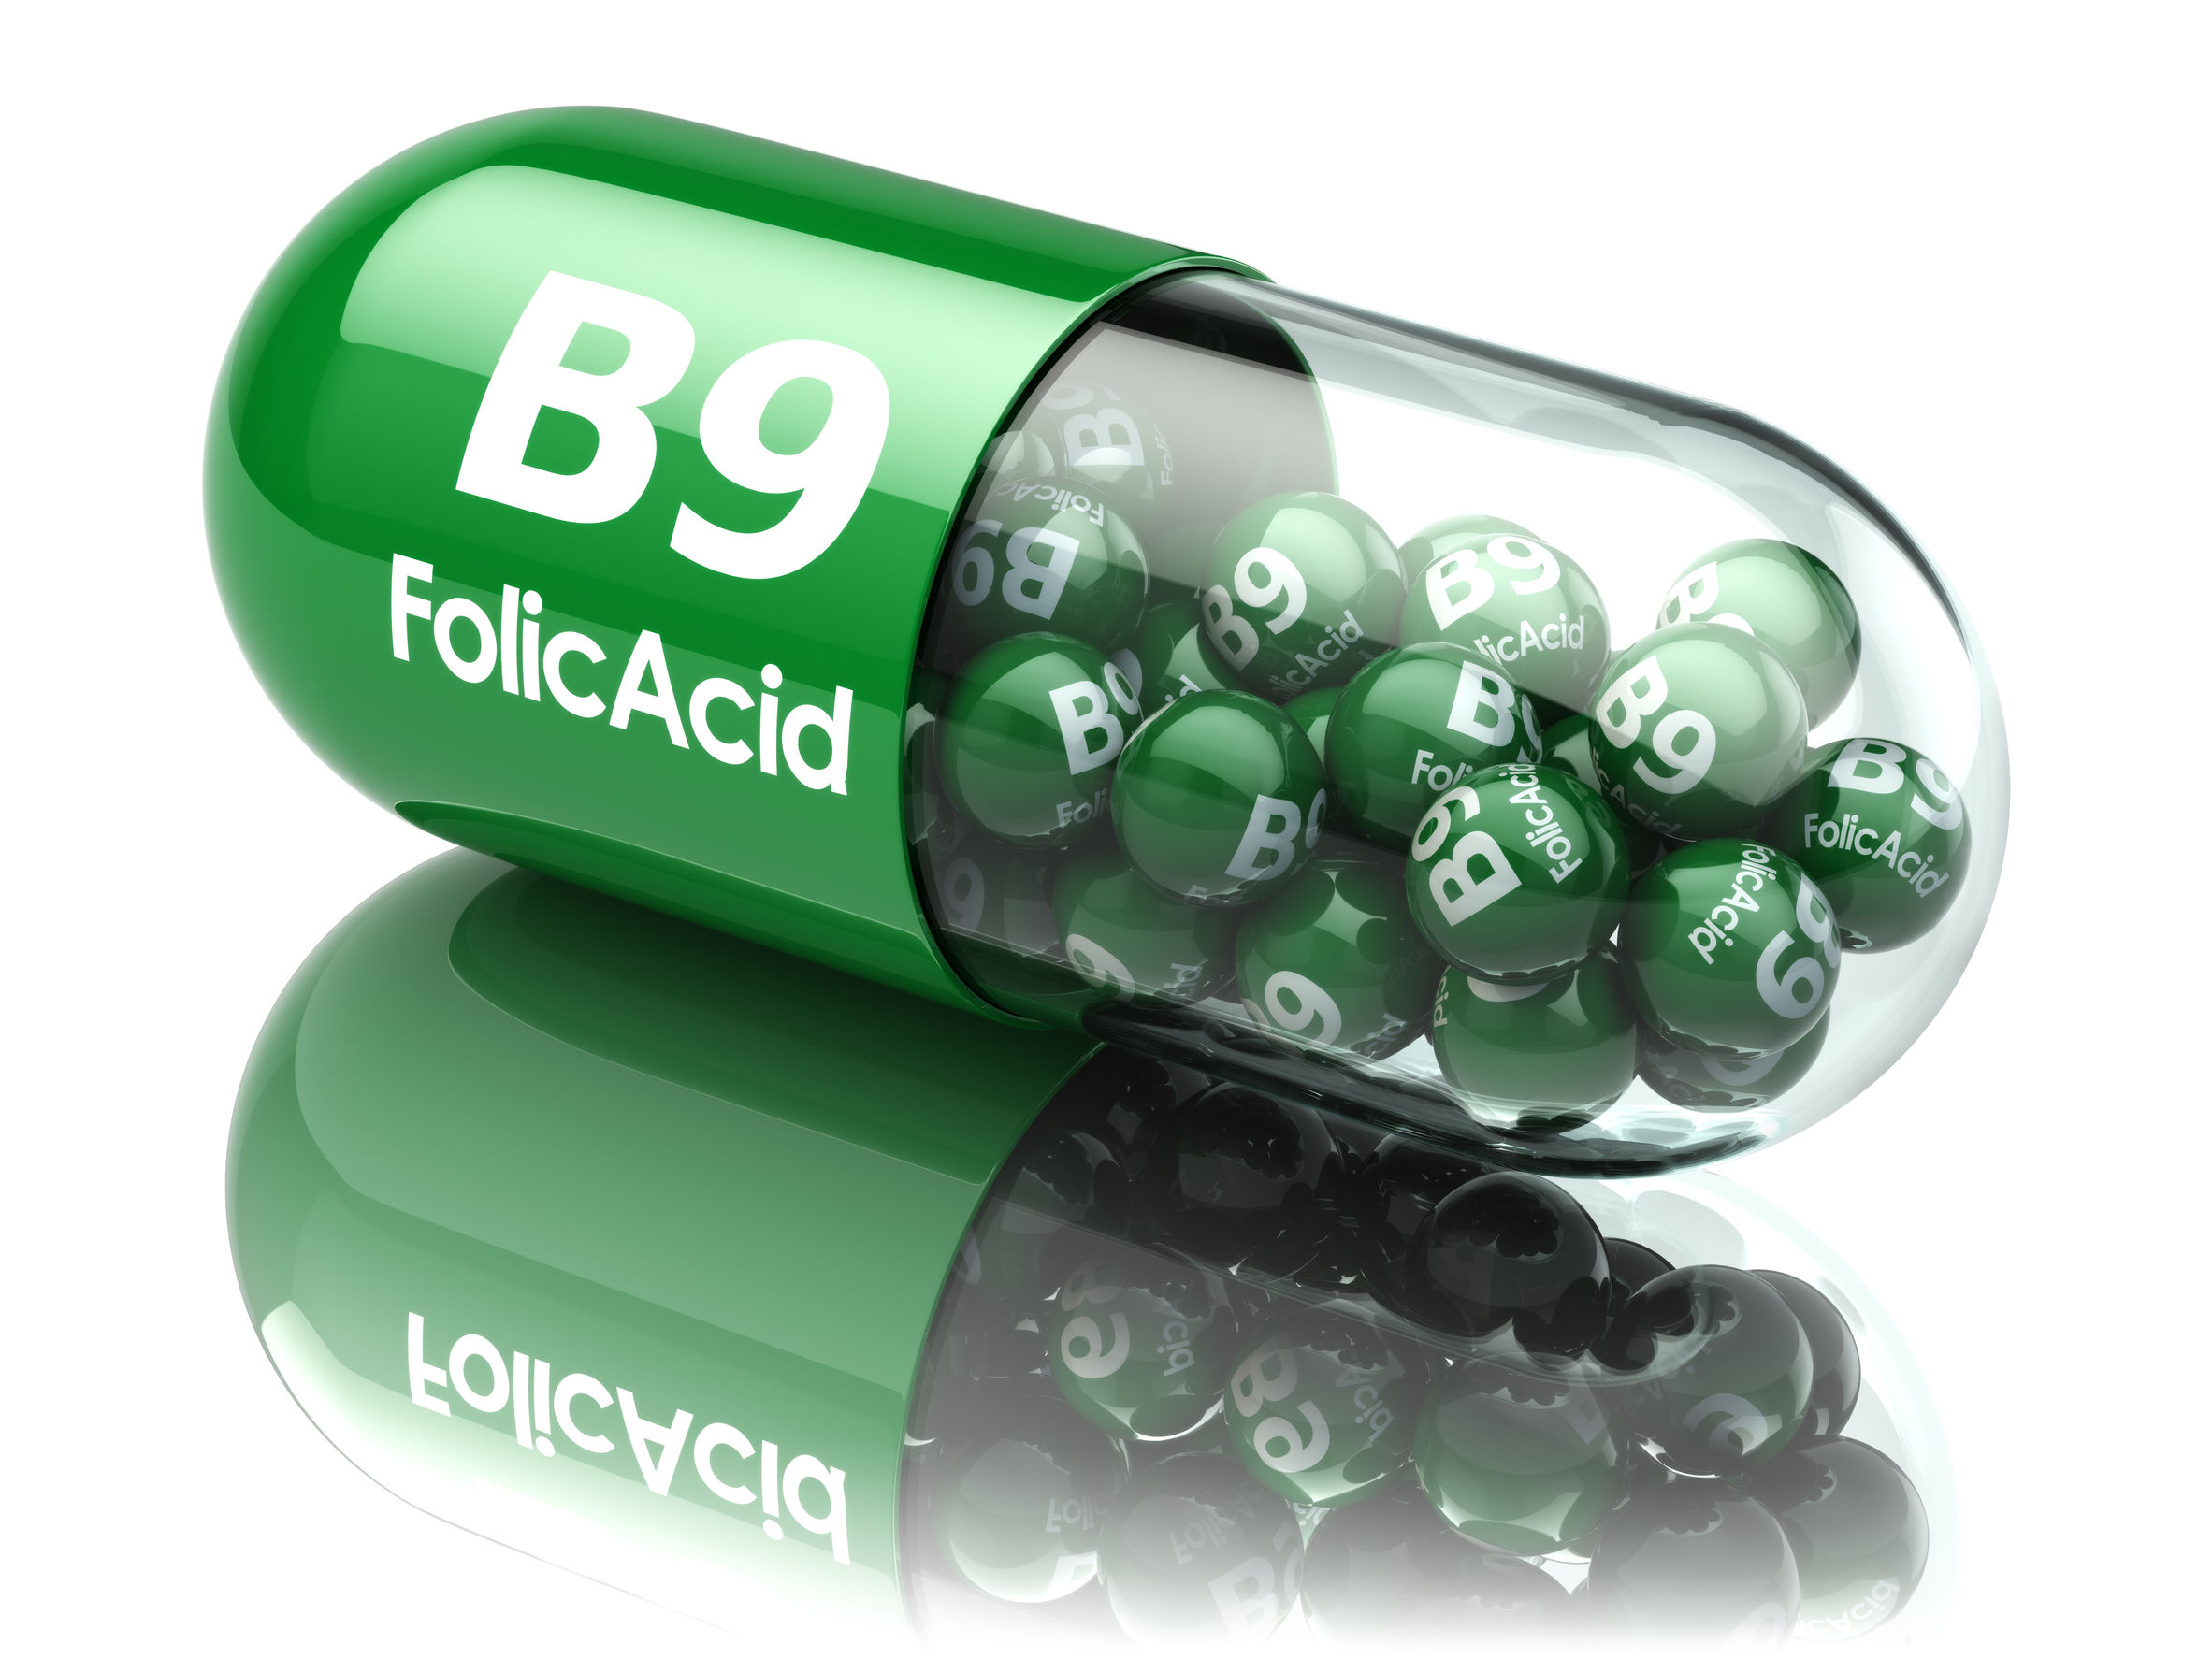 47531853 - pills with b9 folic acid element. dietary supplements. vitamin capsules. 3d